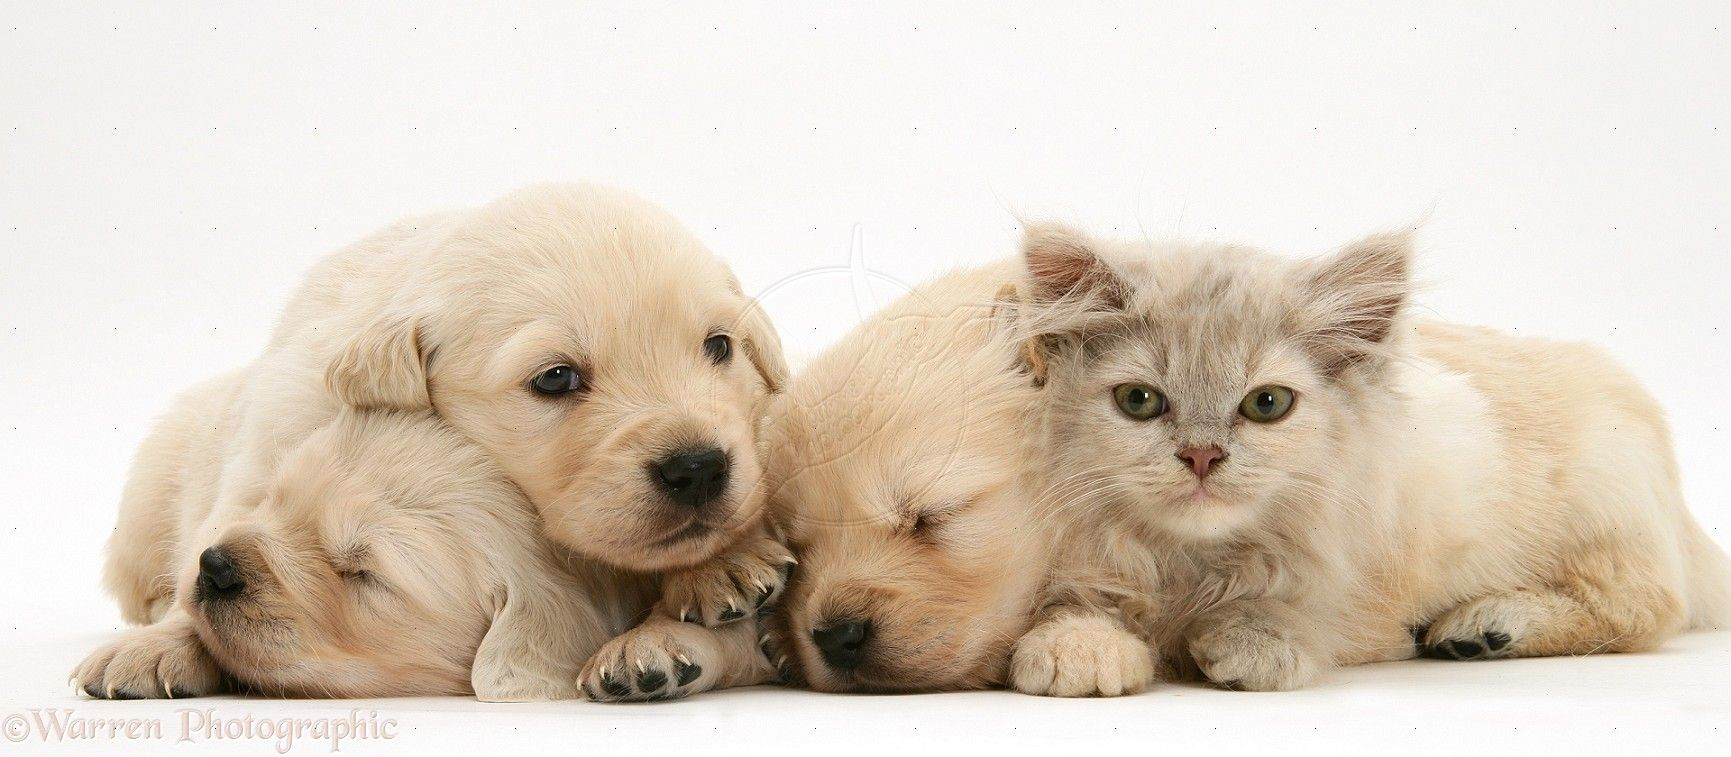 Happy Kitten Morning Cute Puppies And Kittens Free Kindle Books